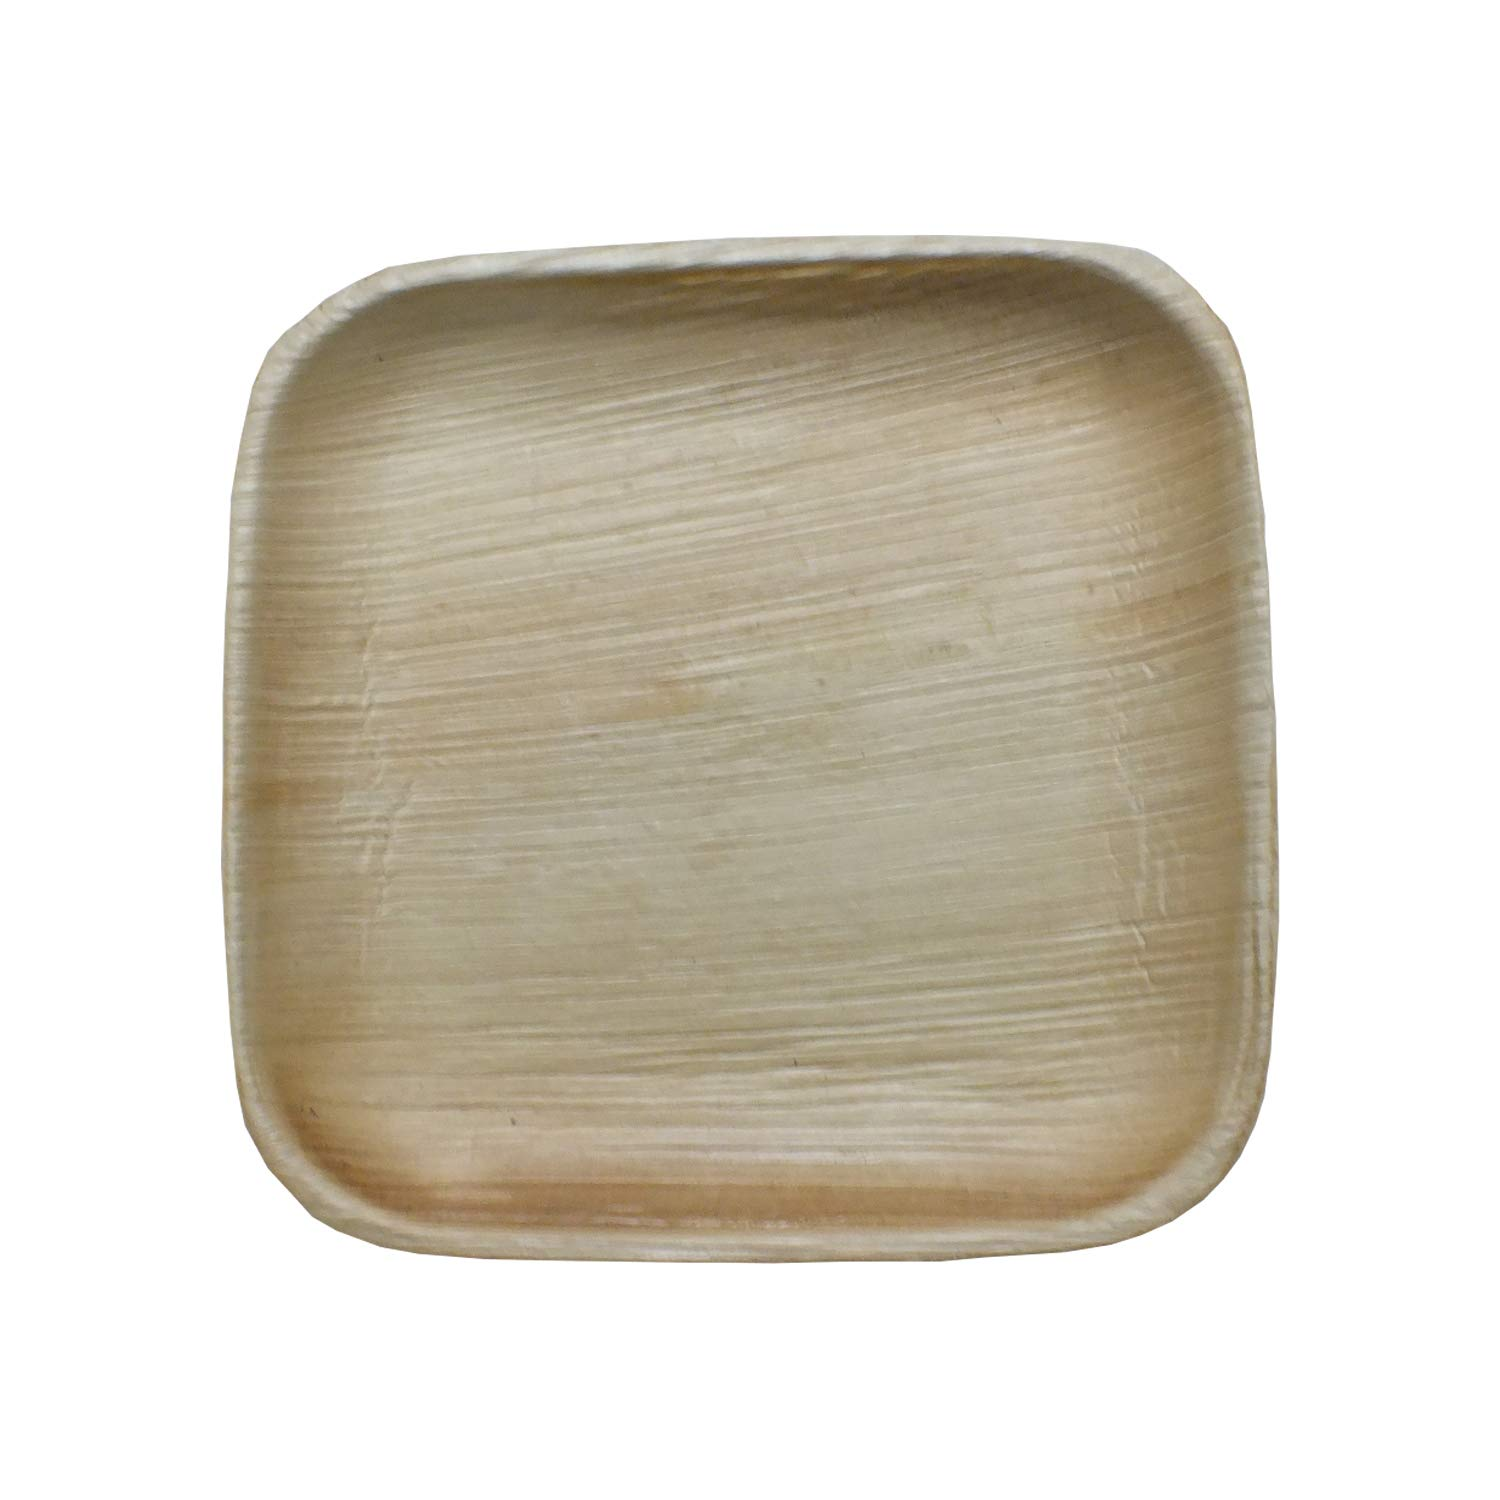 Premium Biodegradable Natural Areca Palm Leaf 6.5 Inch Square Plate, Eco-Friendly and Disposable Suitable for Home and Catering, Pack of 100